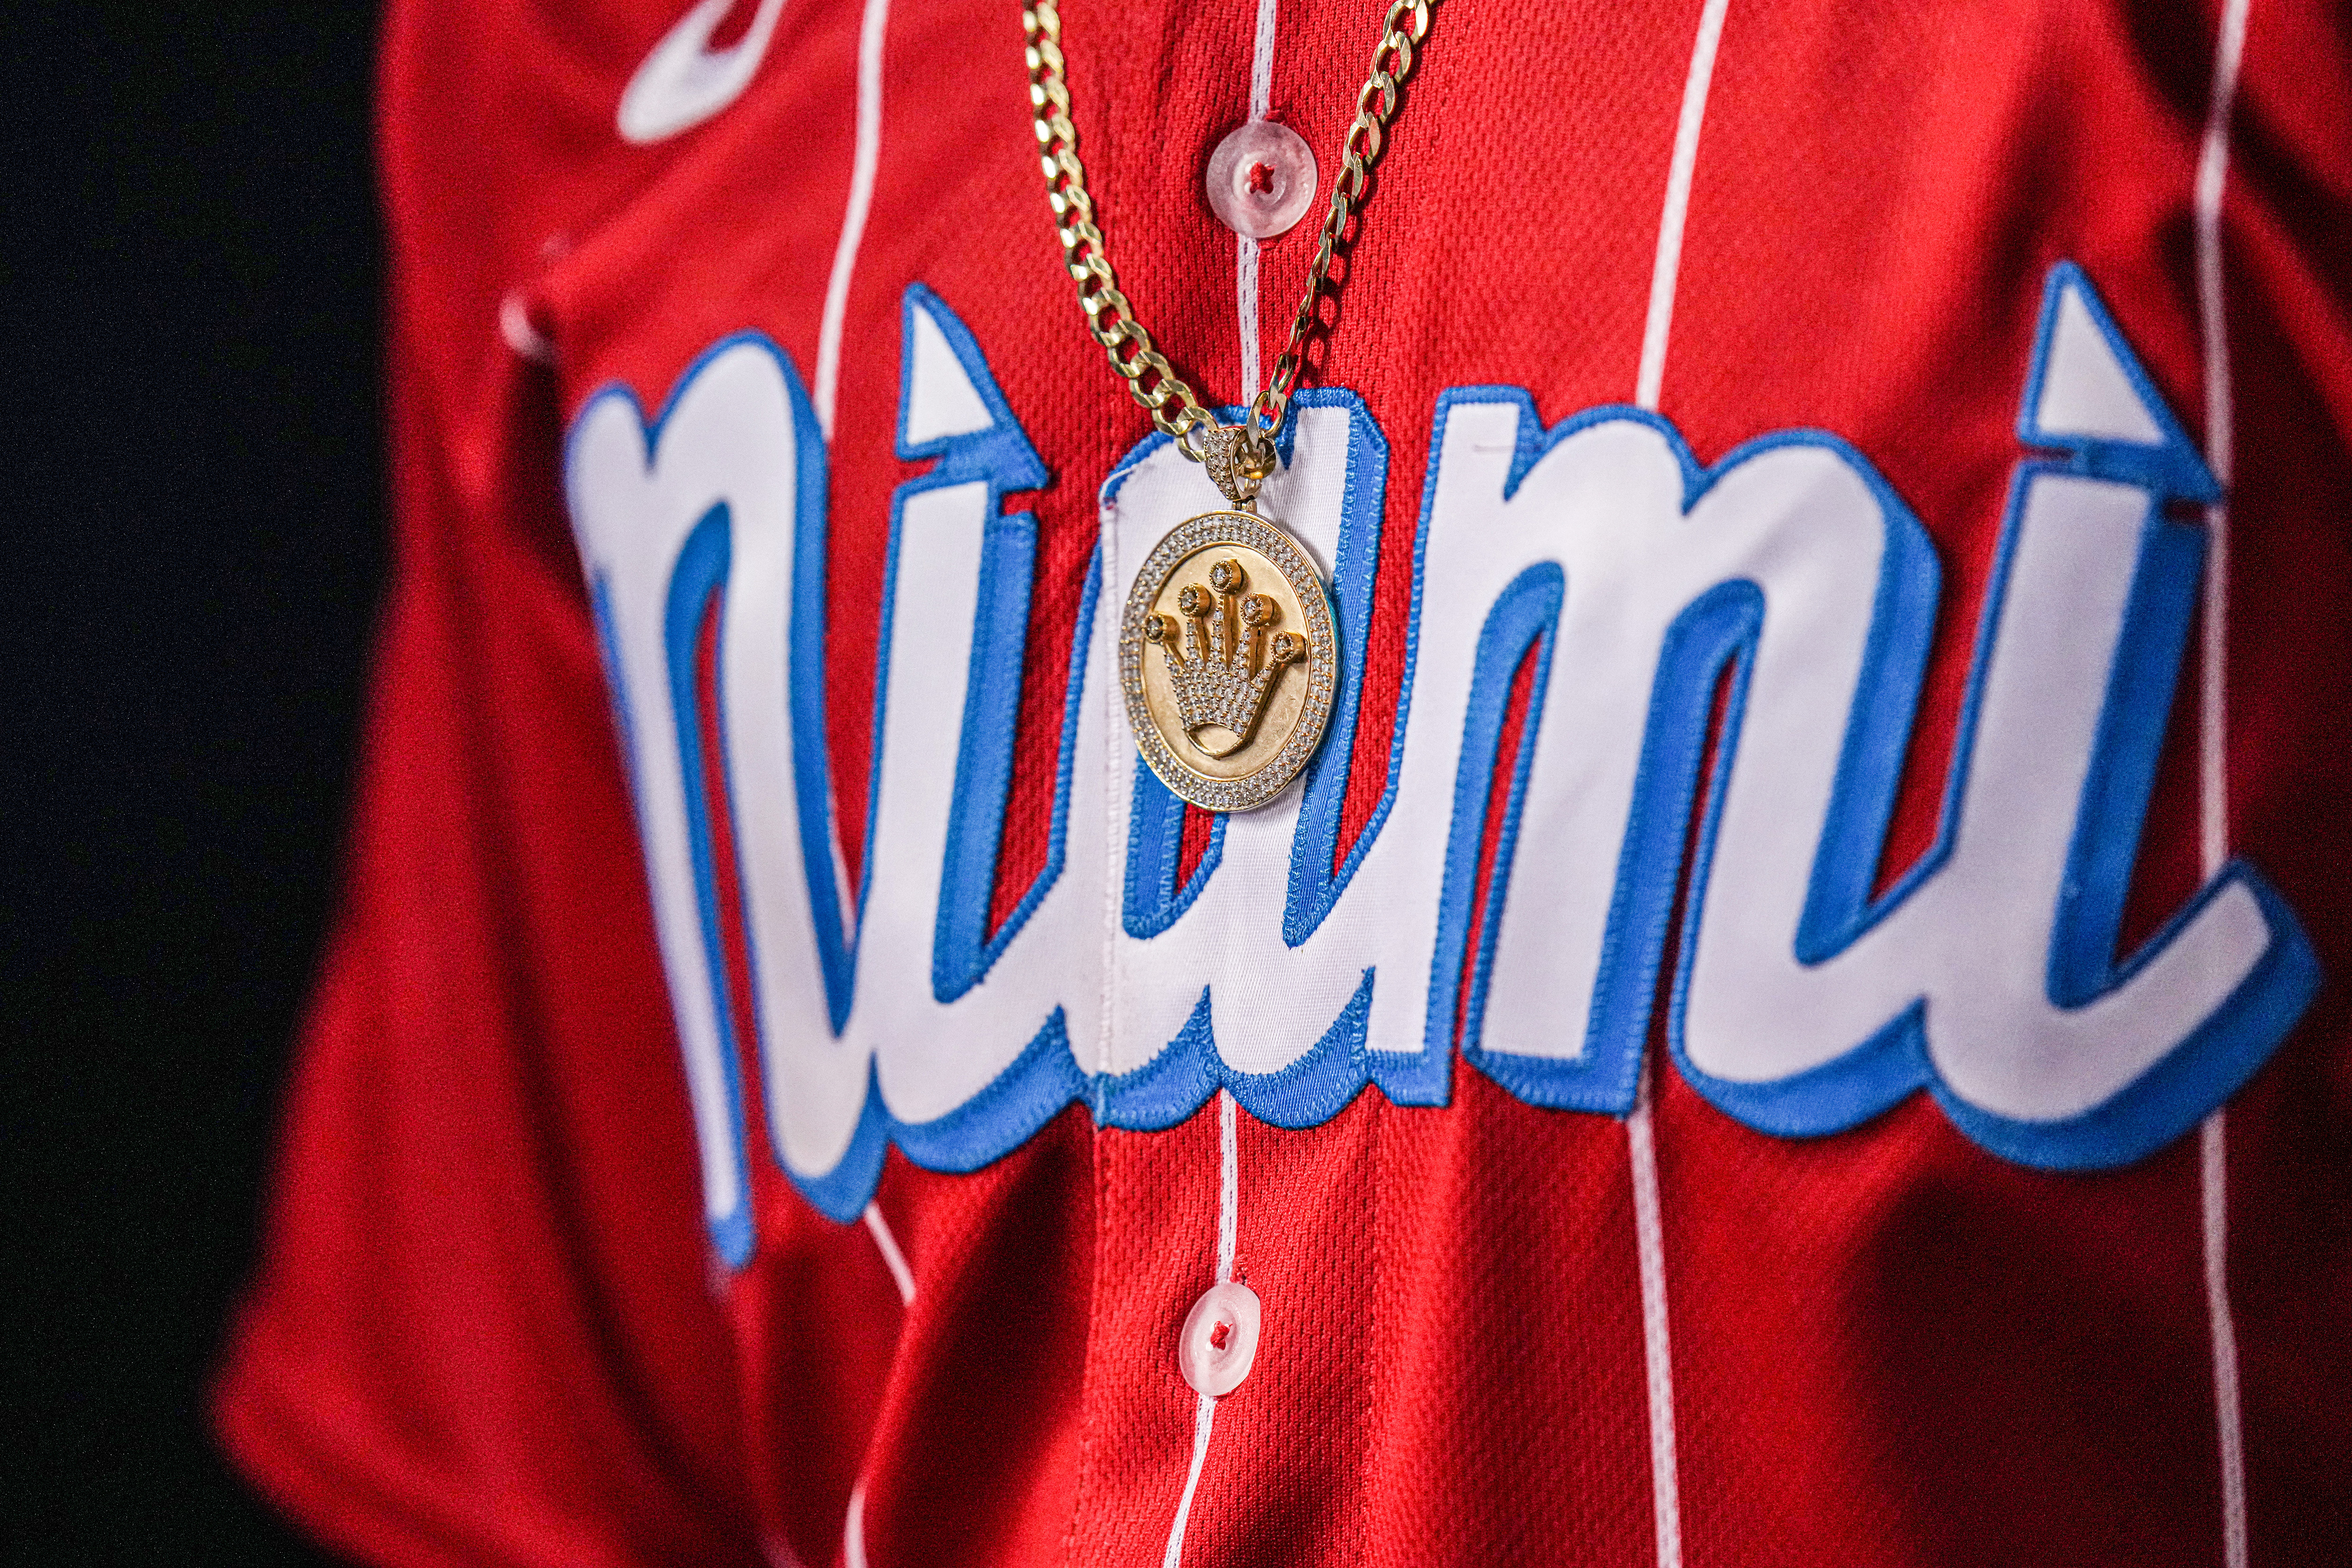 A detailed view of the necklace worn by Bryan De La Cruz #77 of the Miami Marlins in the dugout during the game against the Chicago Cubs at loanDepot park